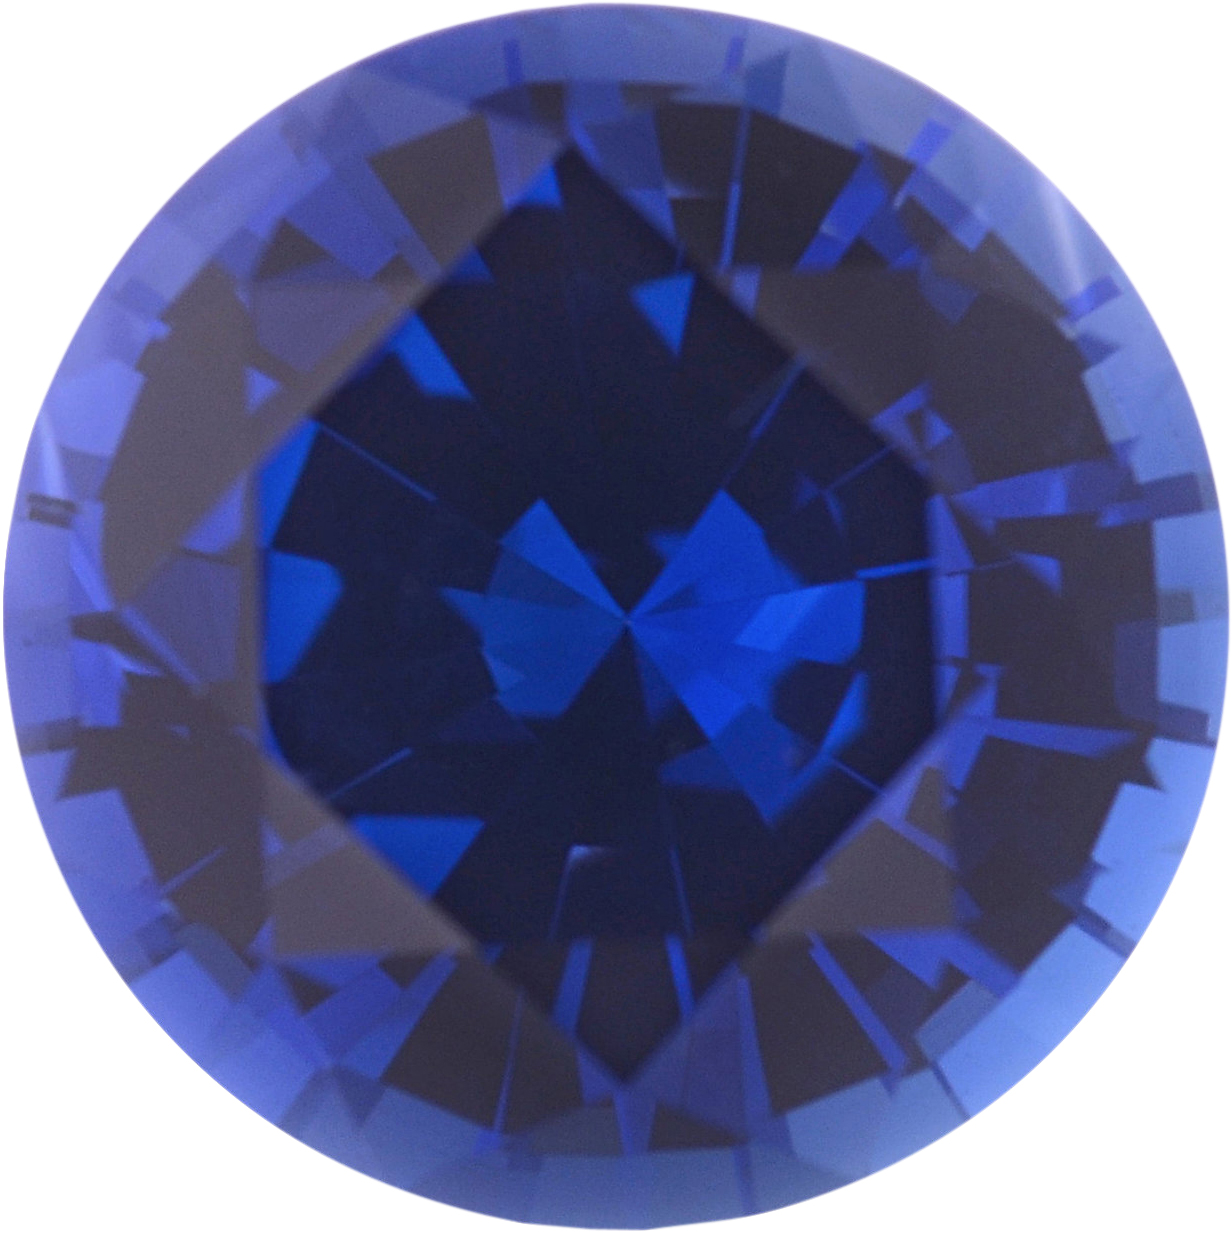 0.97 carats Blue Loose Sapphire Gemstone in Round Cut, 5.97 mm